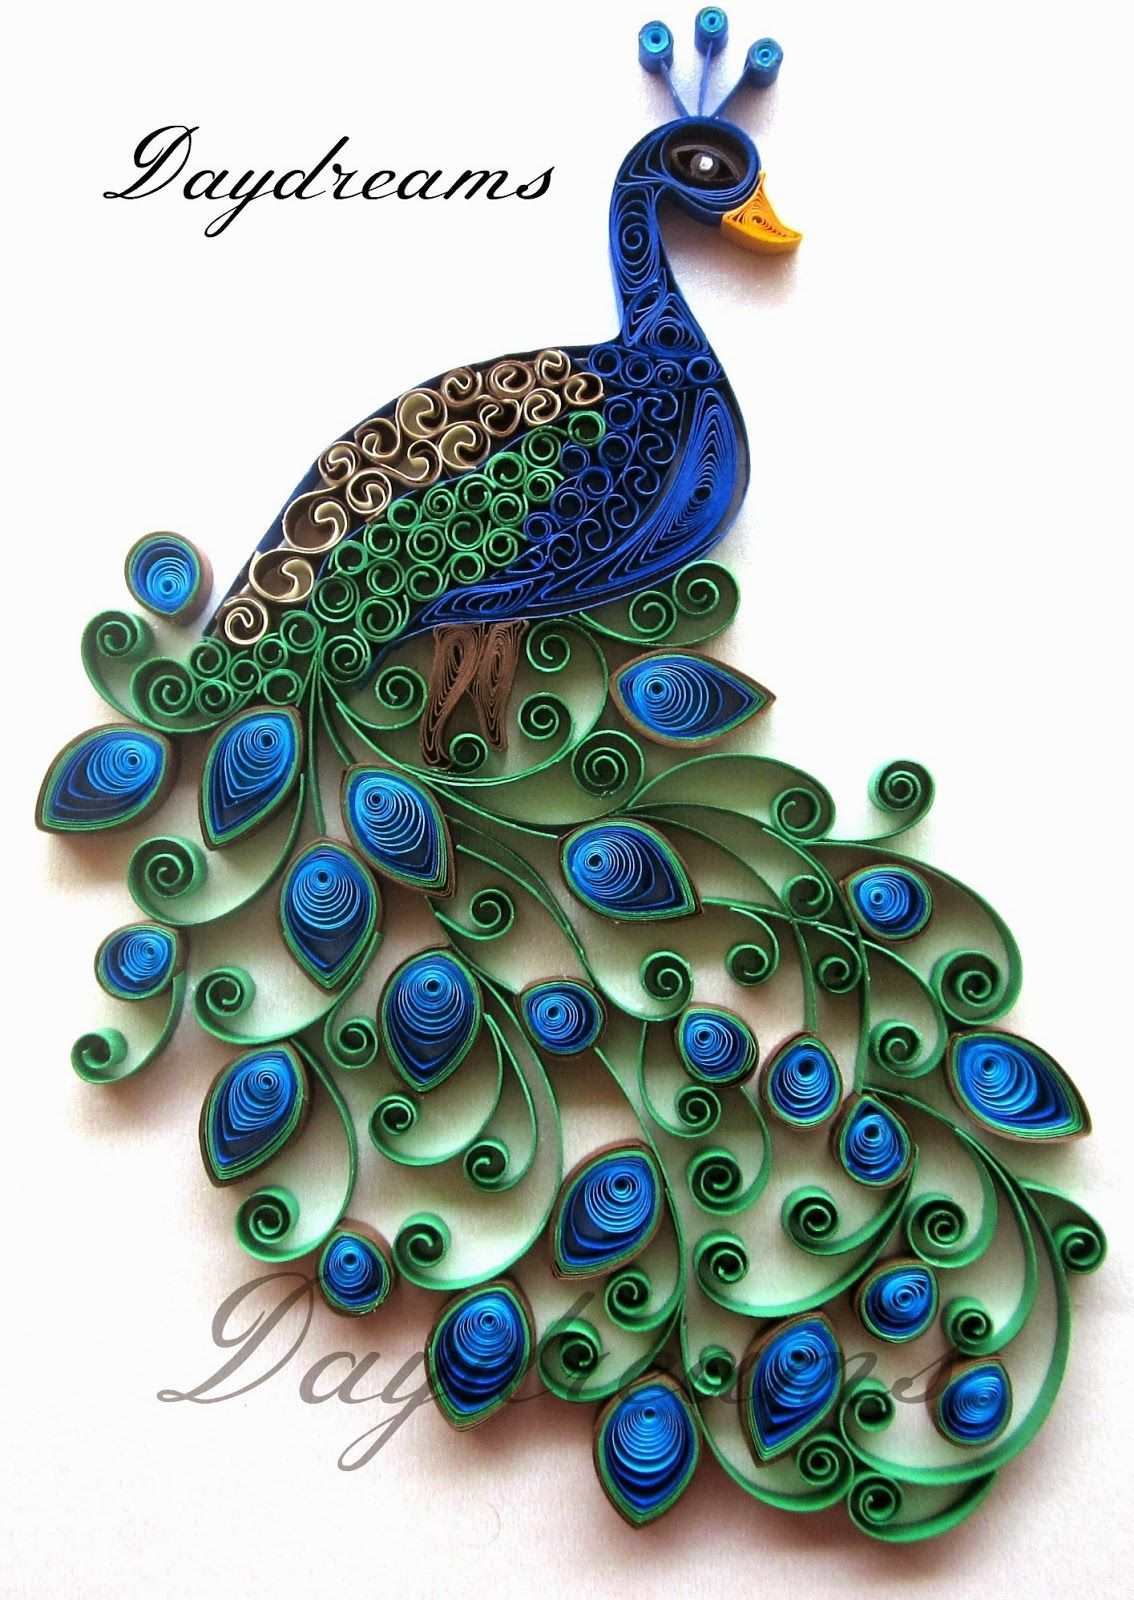 Daydreams Quilled Peacock Embroidery Design Inspired Crafts